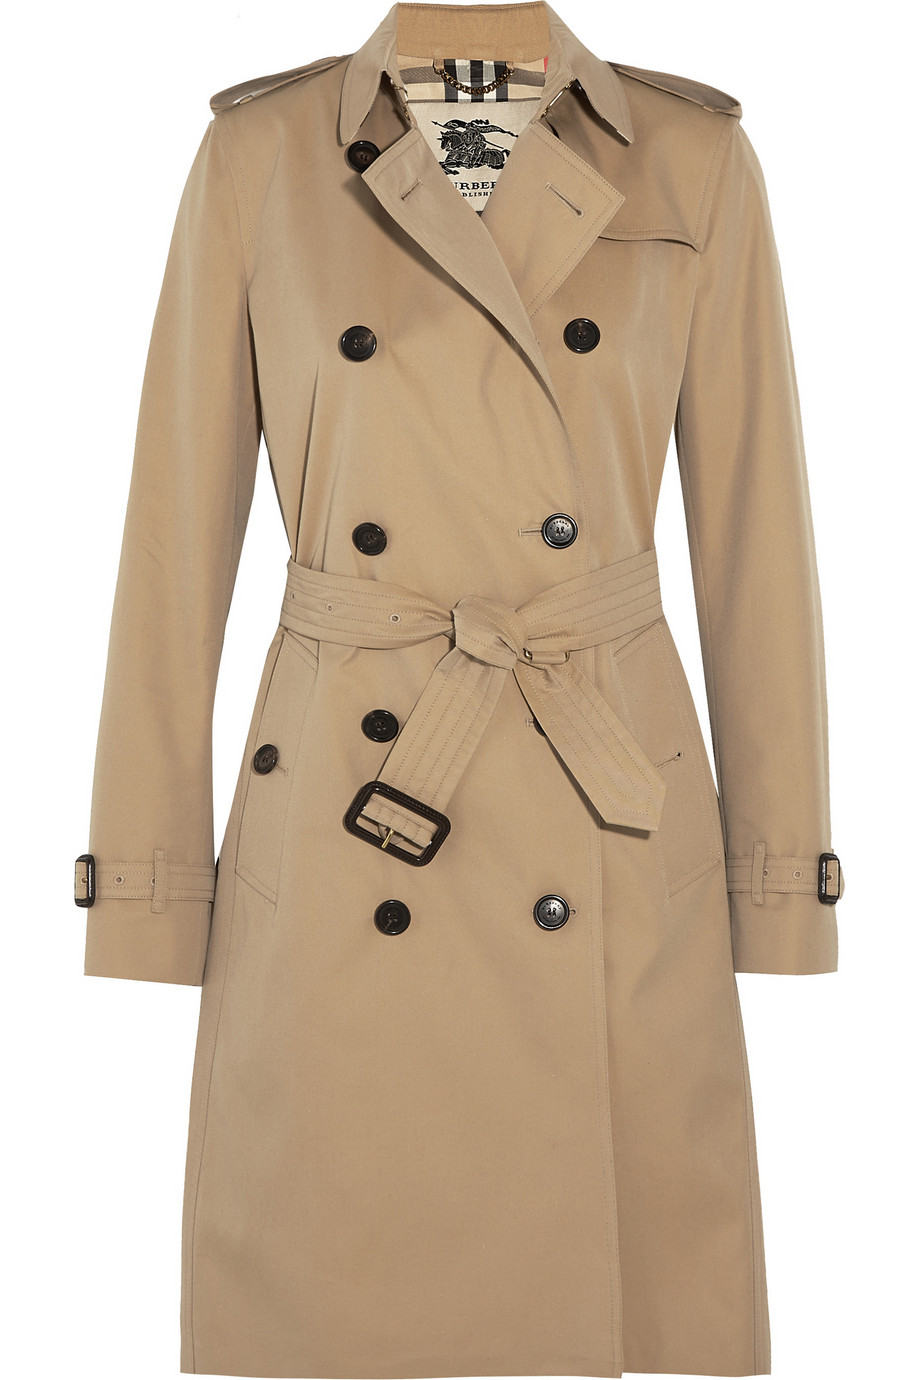 1444233573-kensington-long-cotton-gabardine-burberry-trench-coat